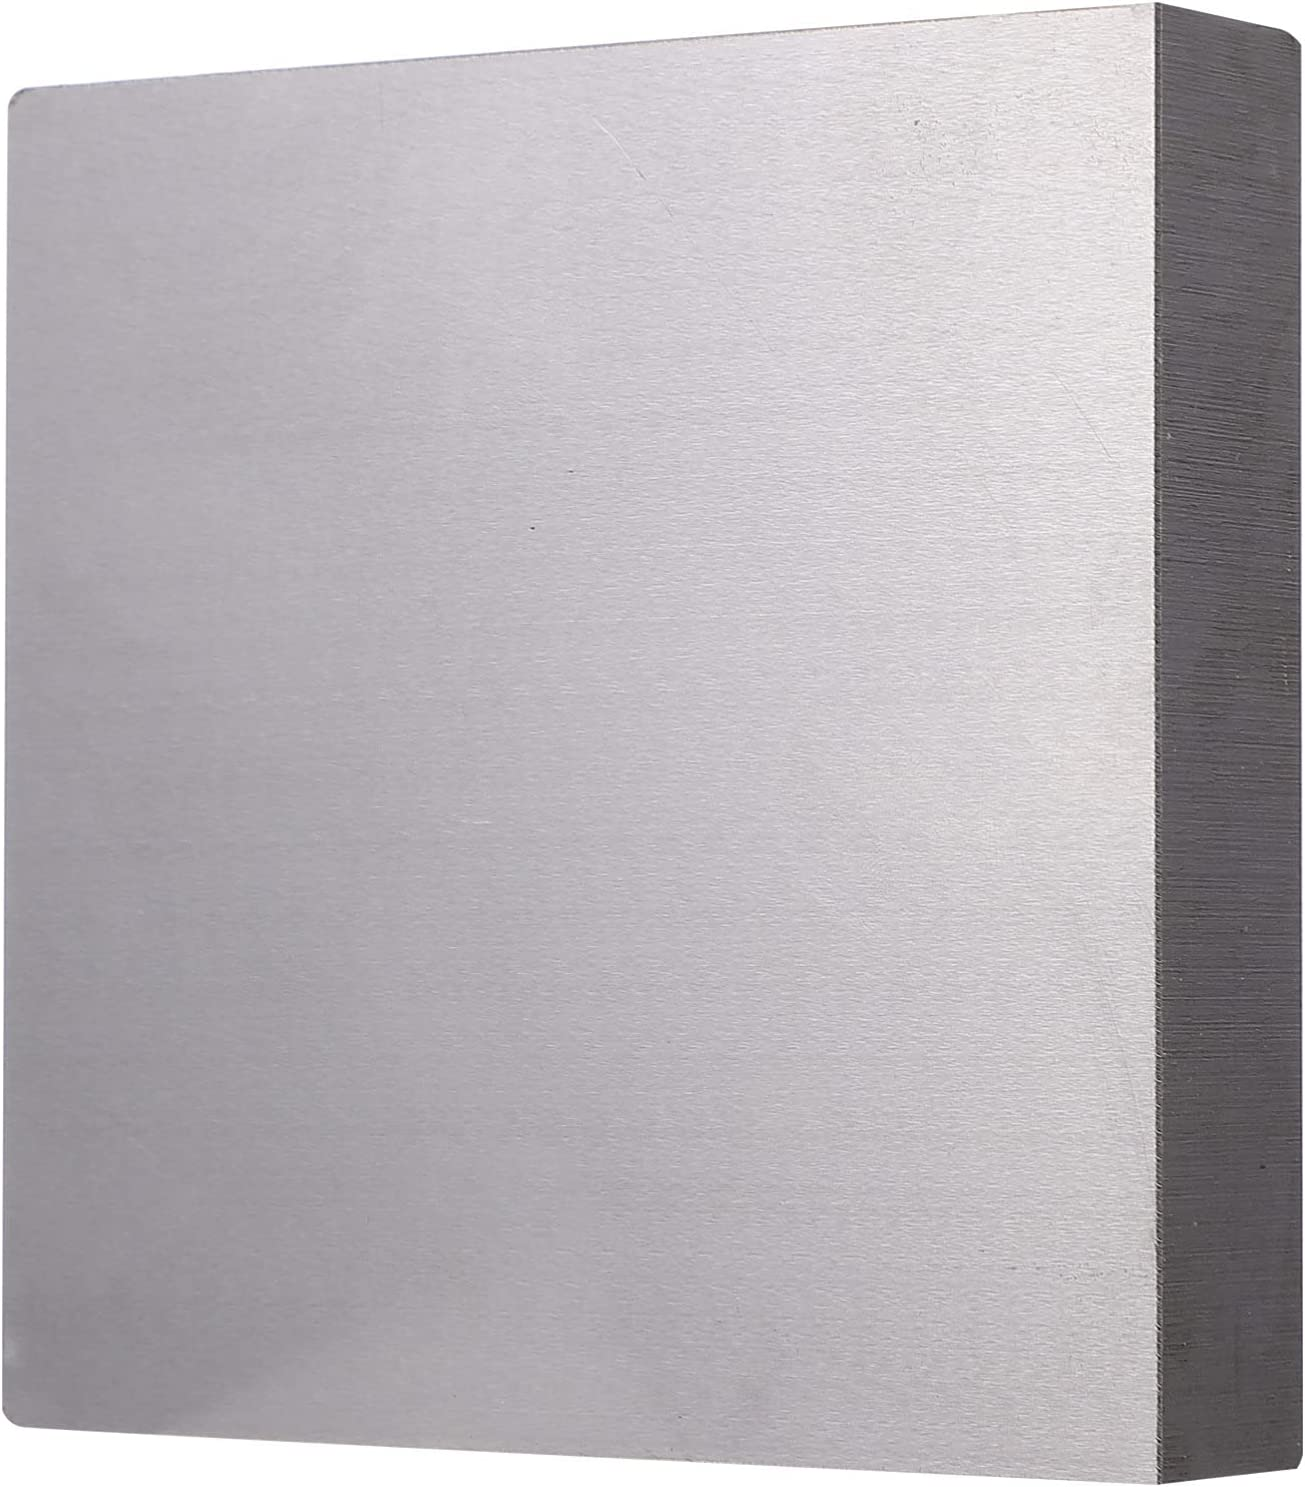 EXCEART Jewelry Cutting Board free New Orleans Mall Pad Processing Mat